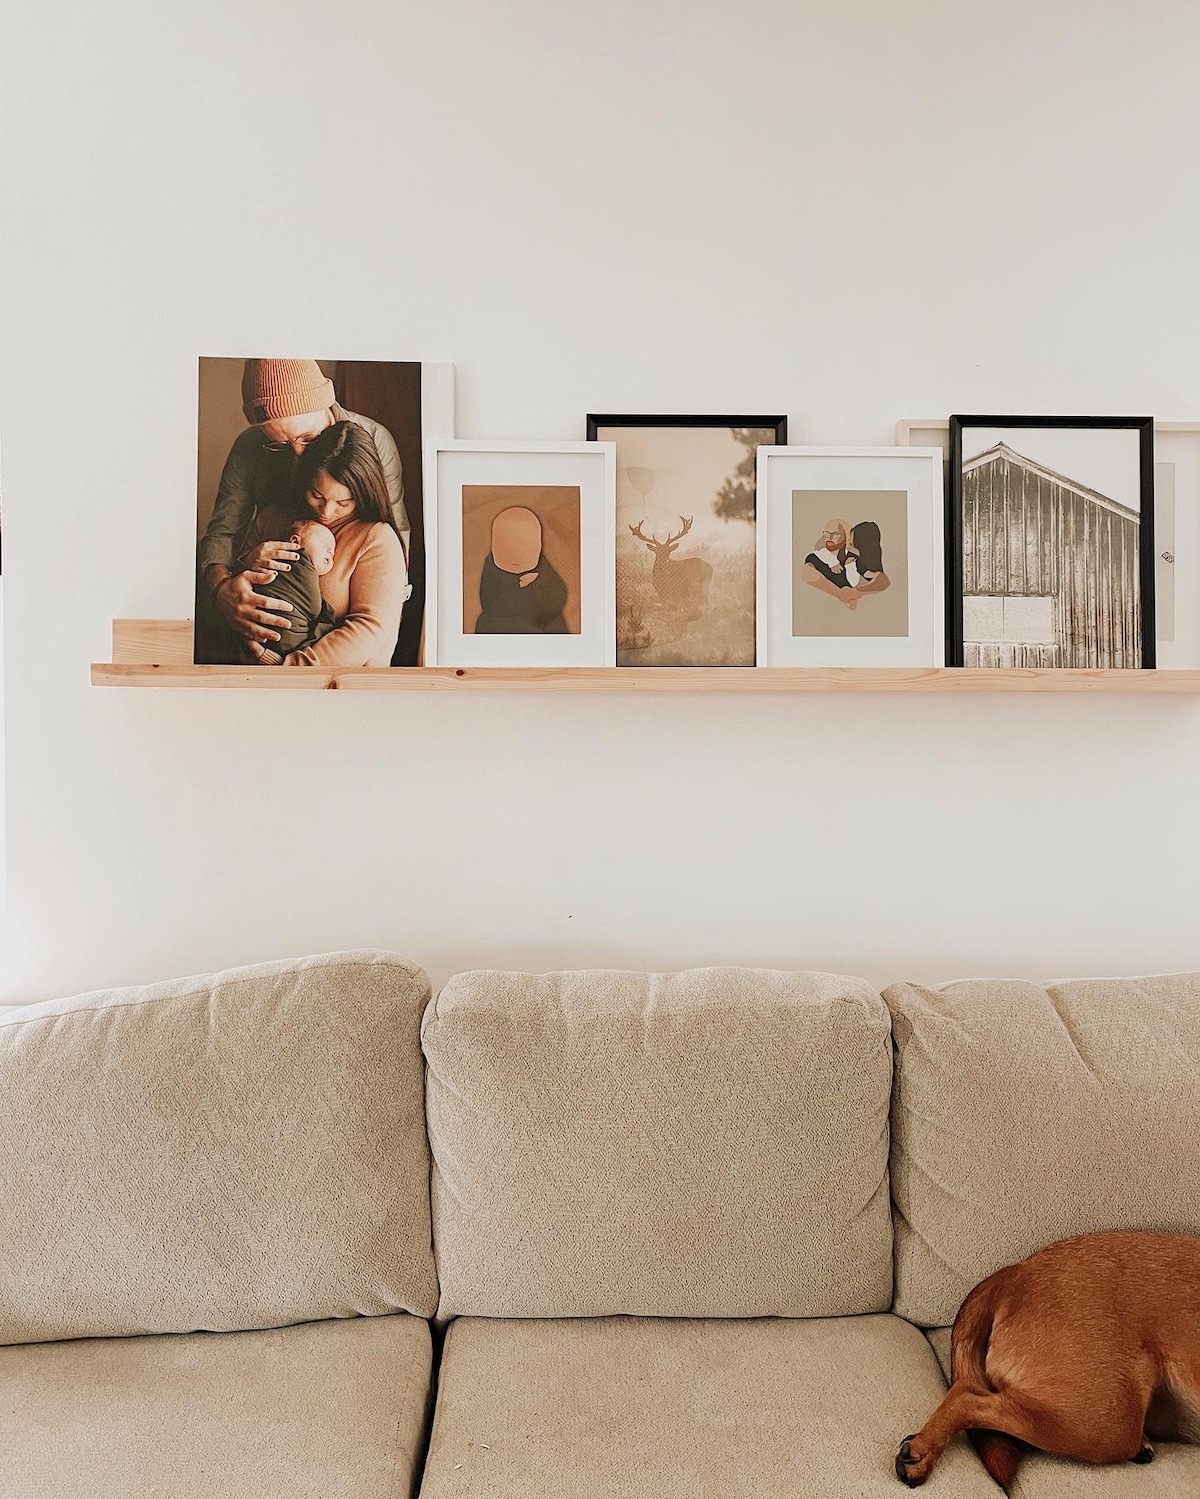 Artifact Uprising Gallery Frames layered on floating wall shelf above couch with dog